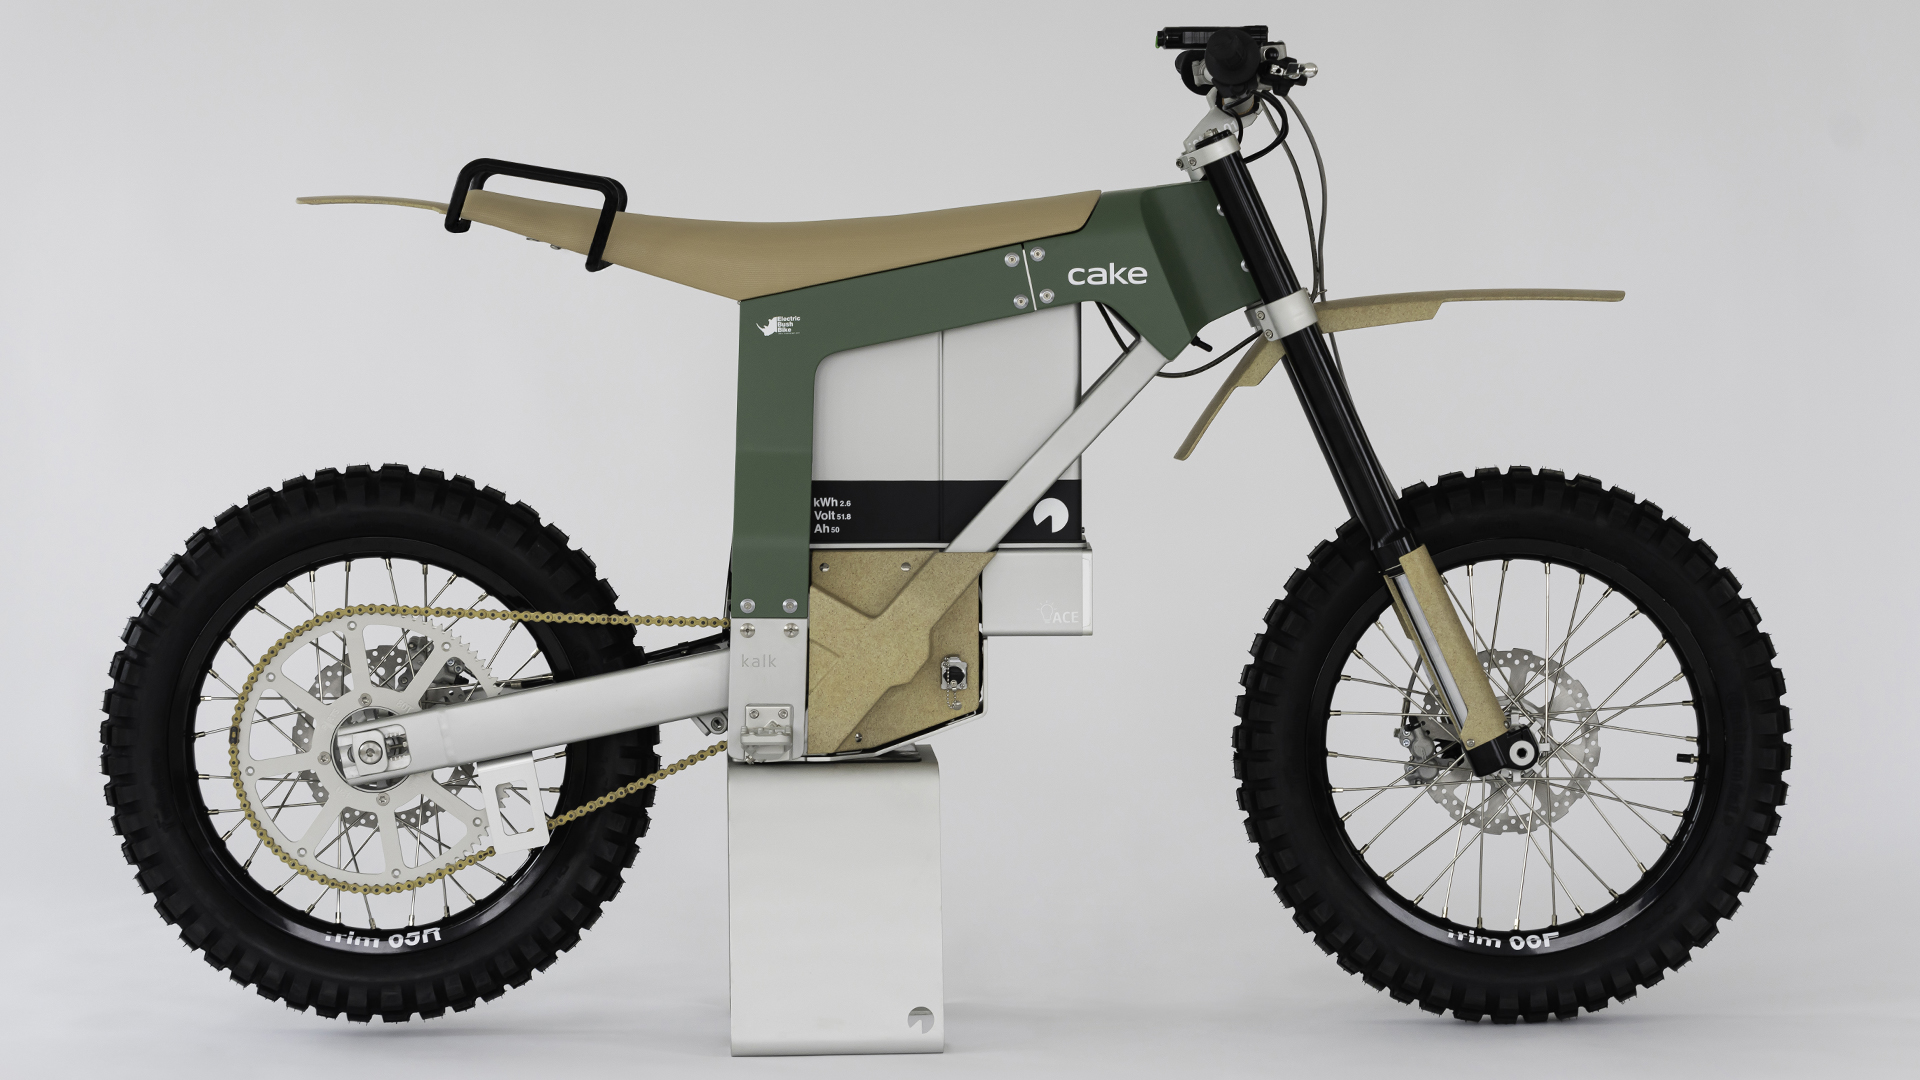 This solar powered, off-grid bike can ambush poachers anywhere - on the drive